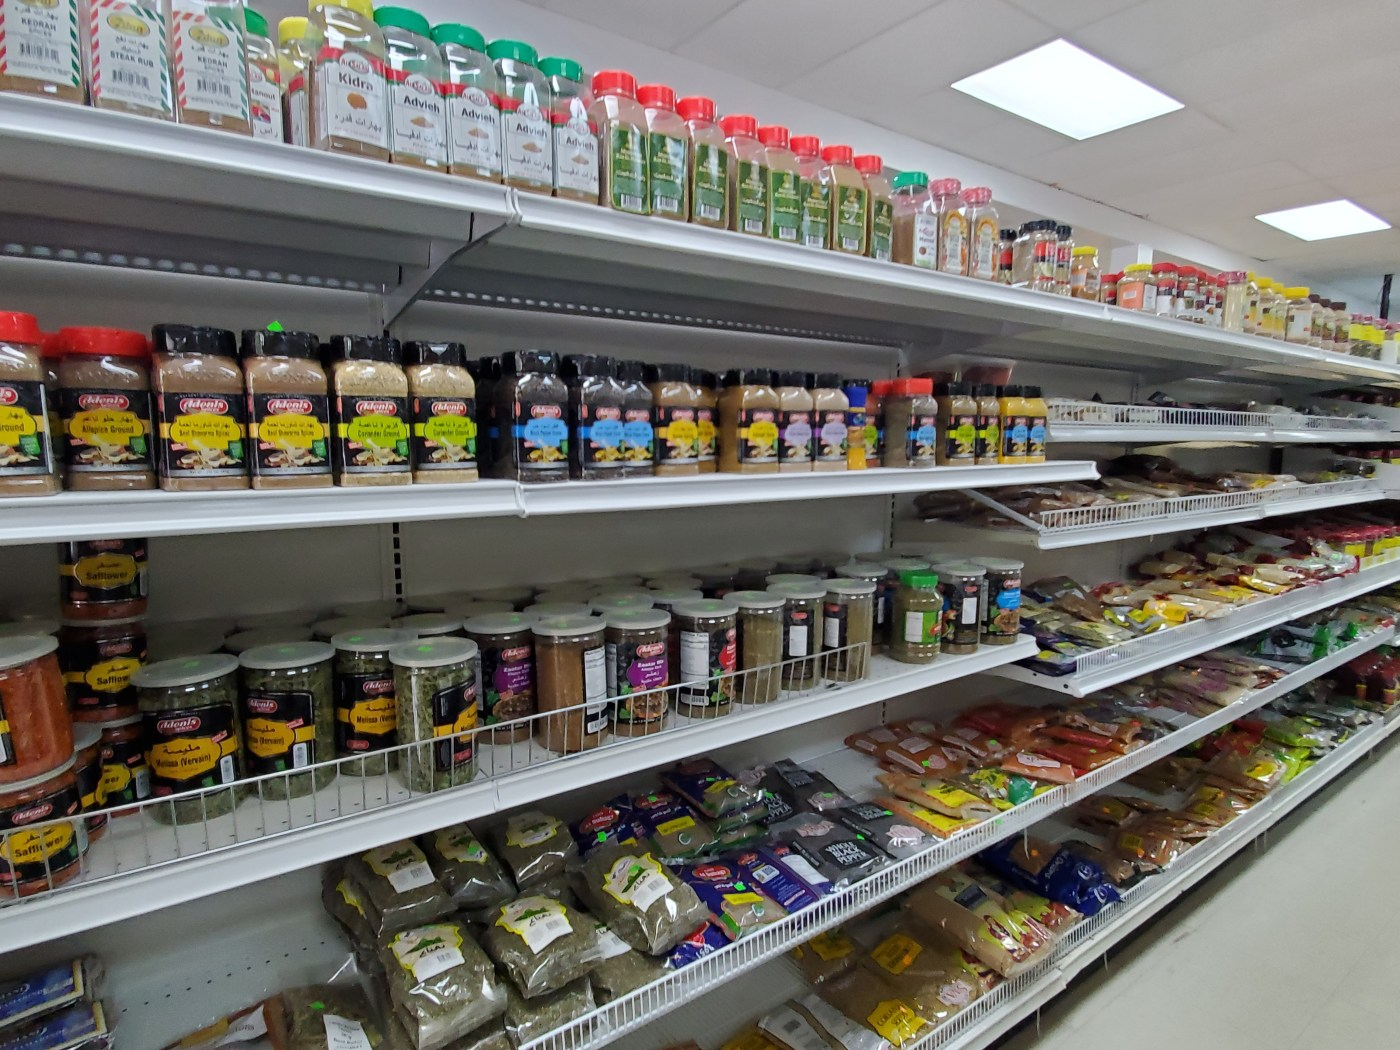 A photo of the spice shelves at Halal Supermarket